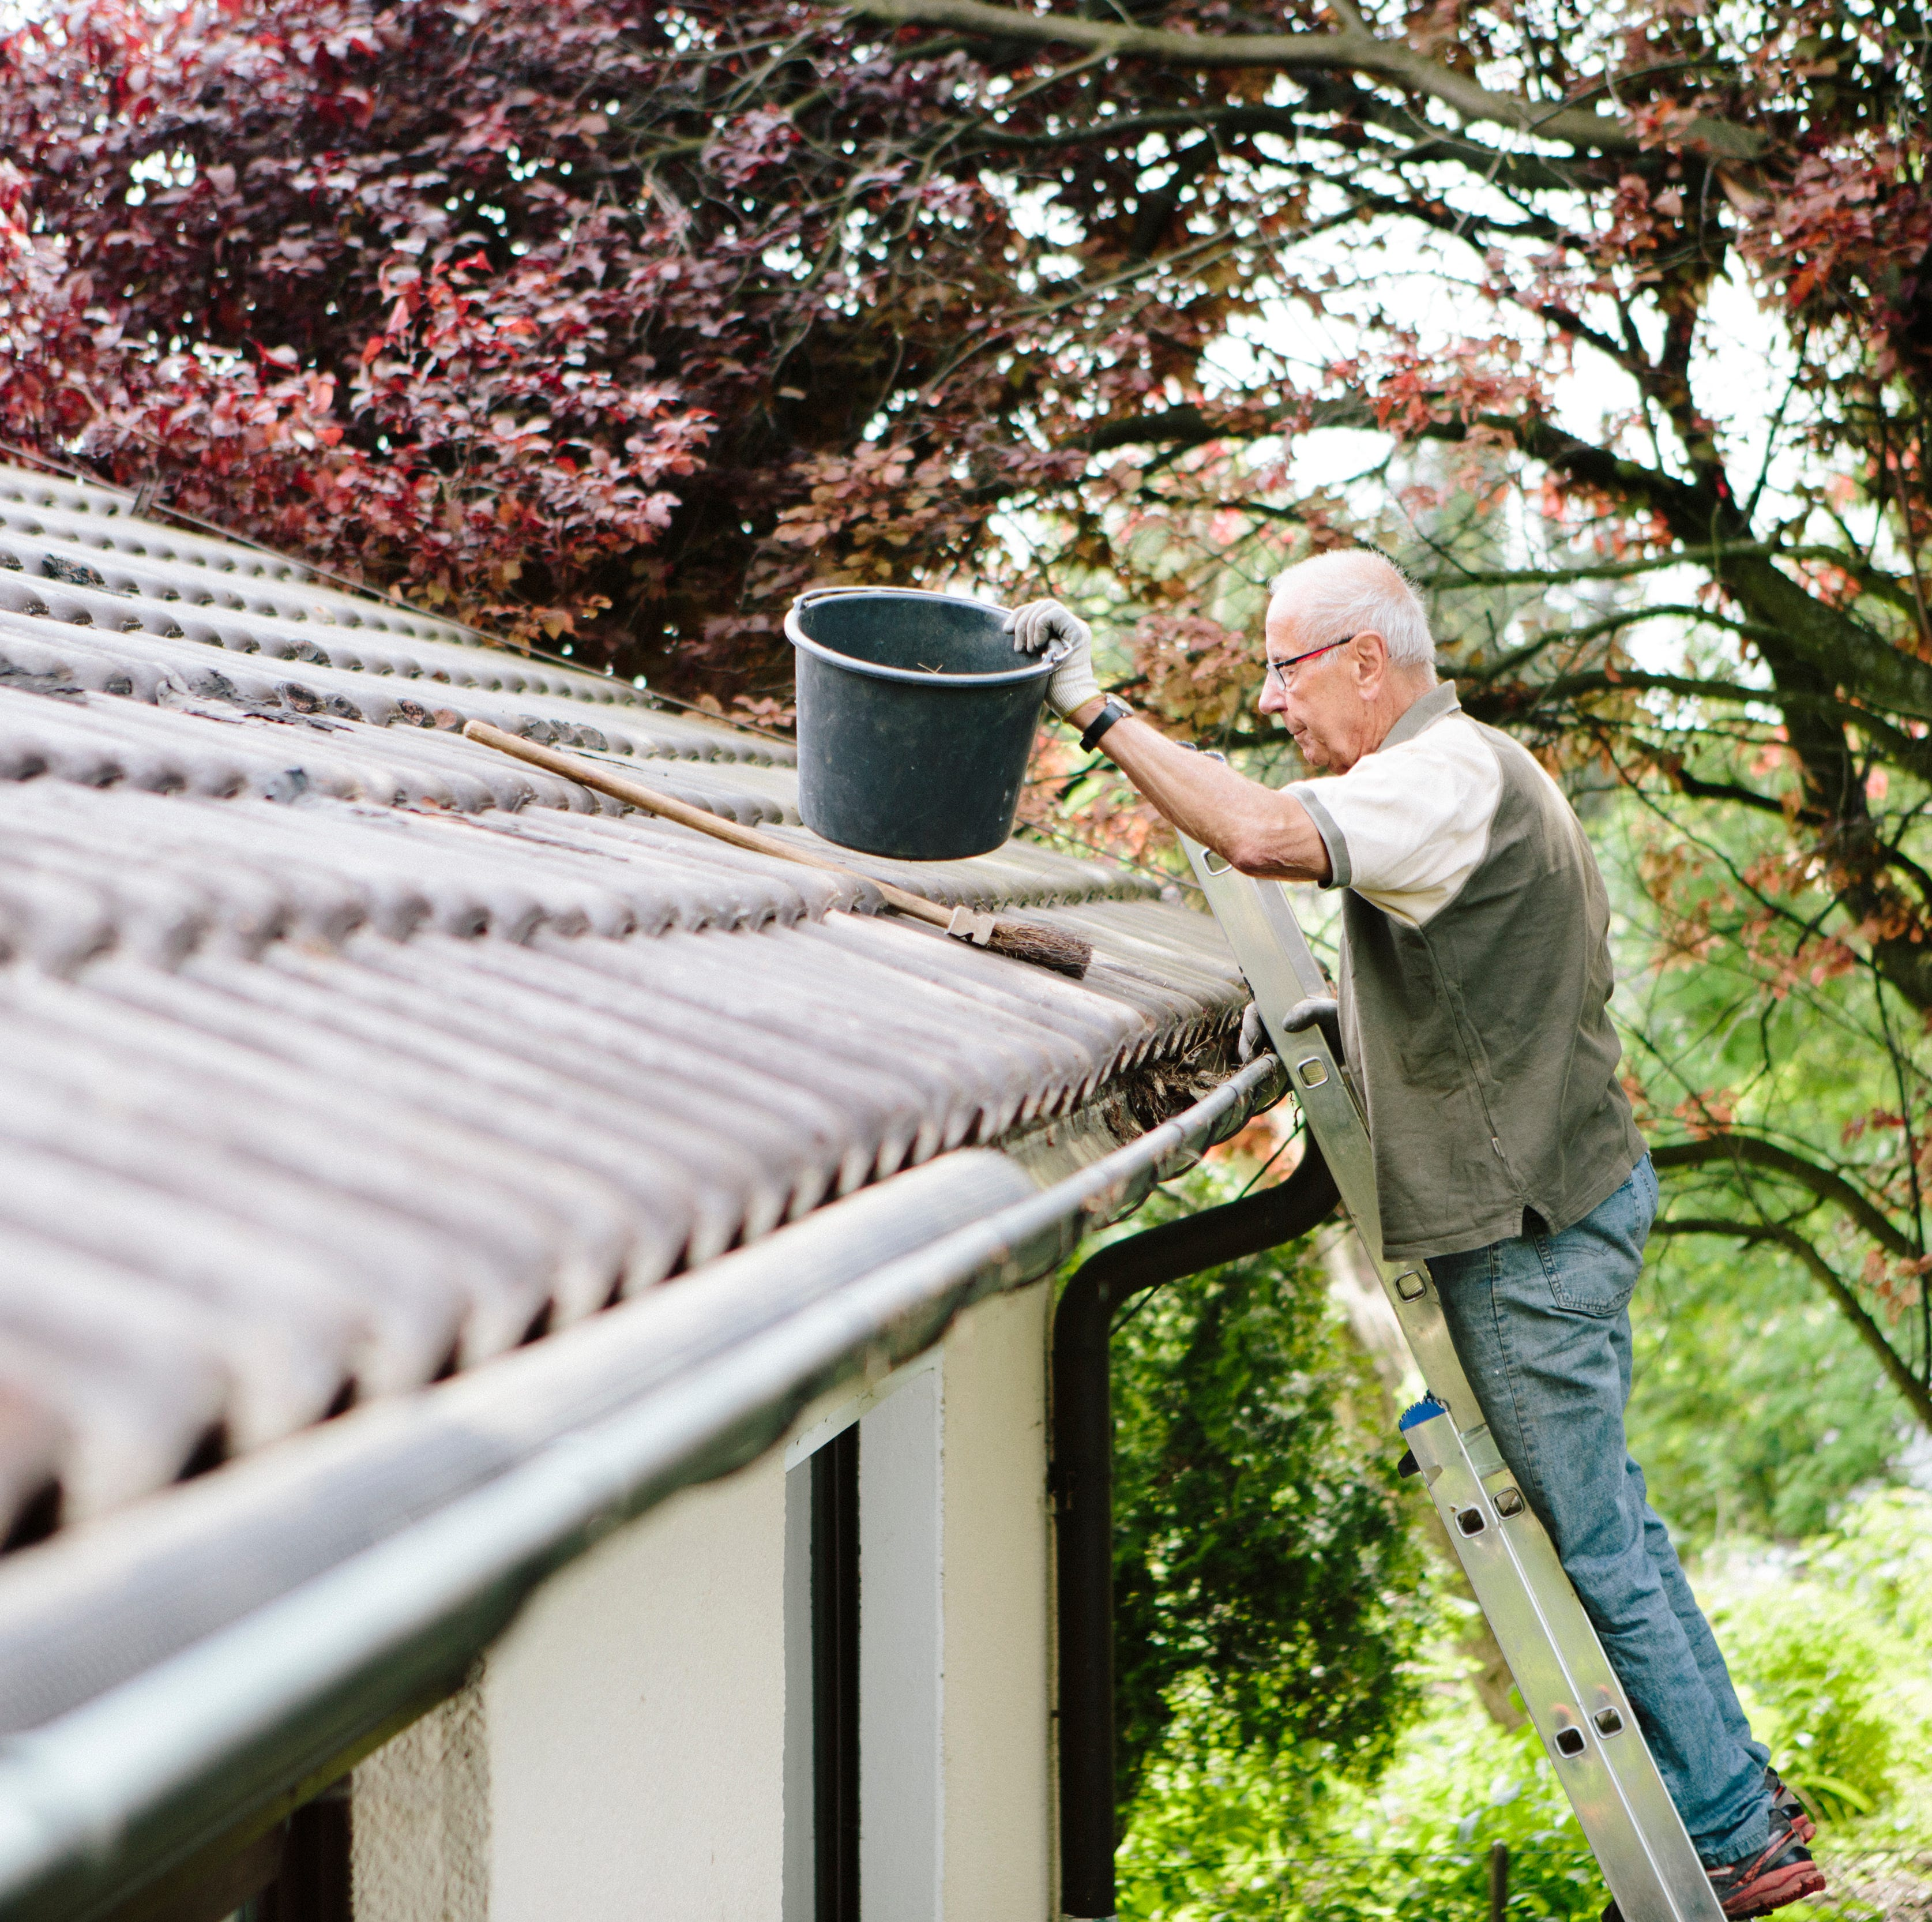 The easiest ways to maintain or boost your home's value